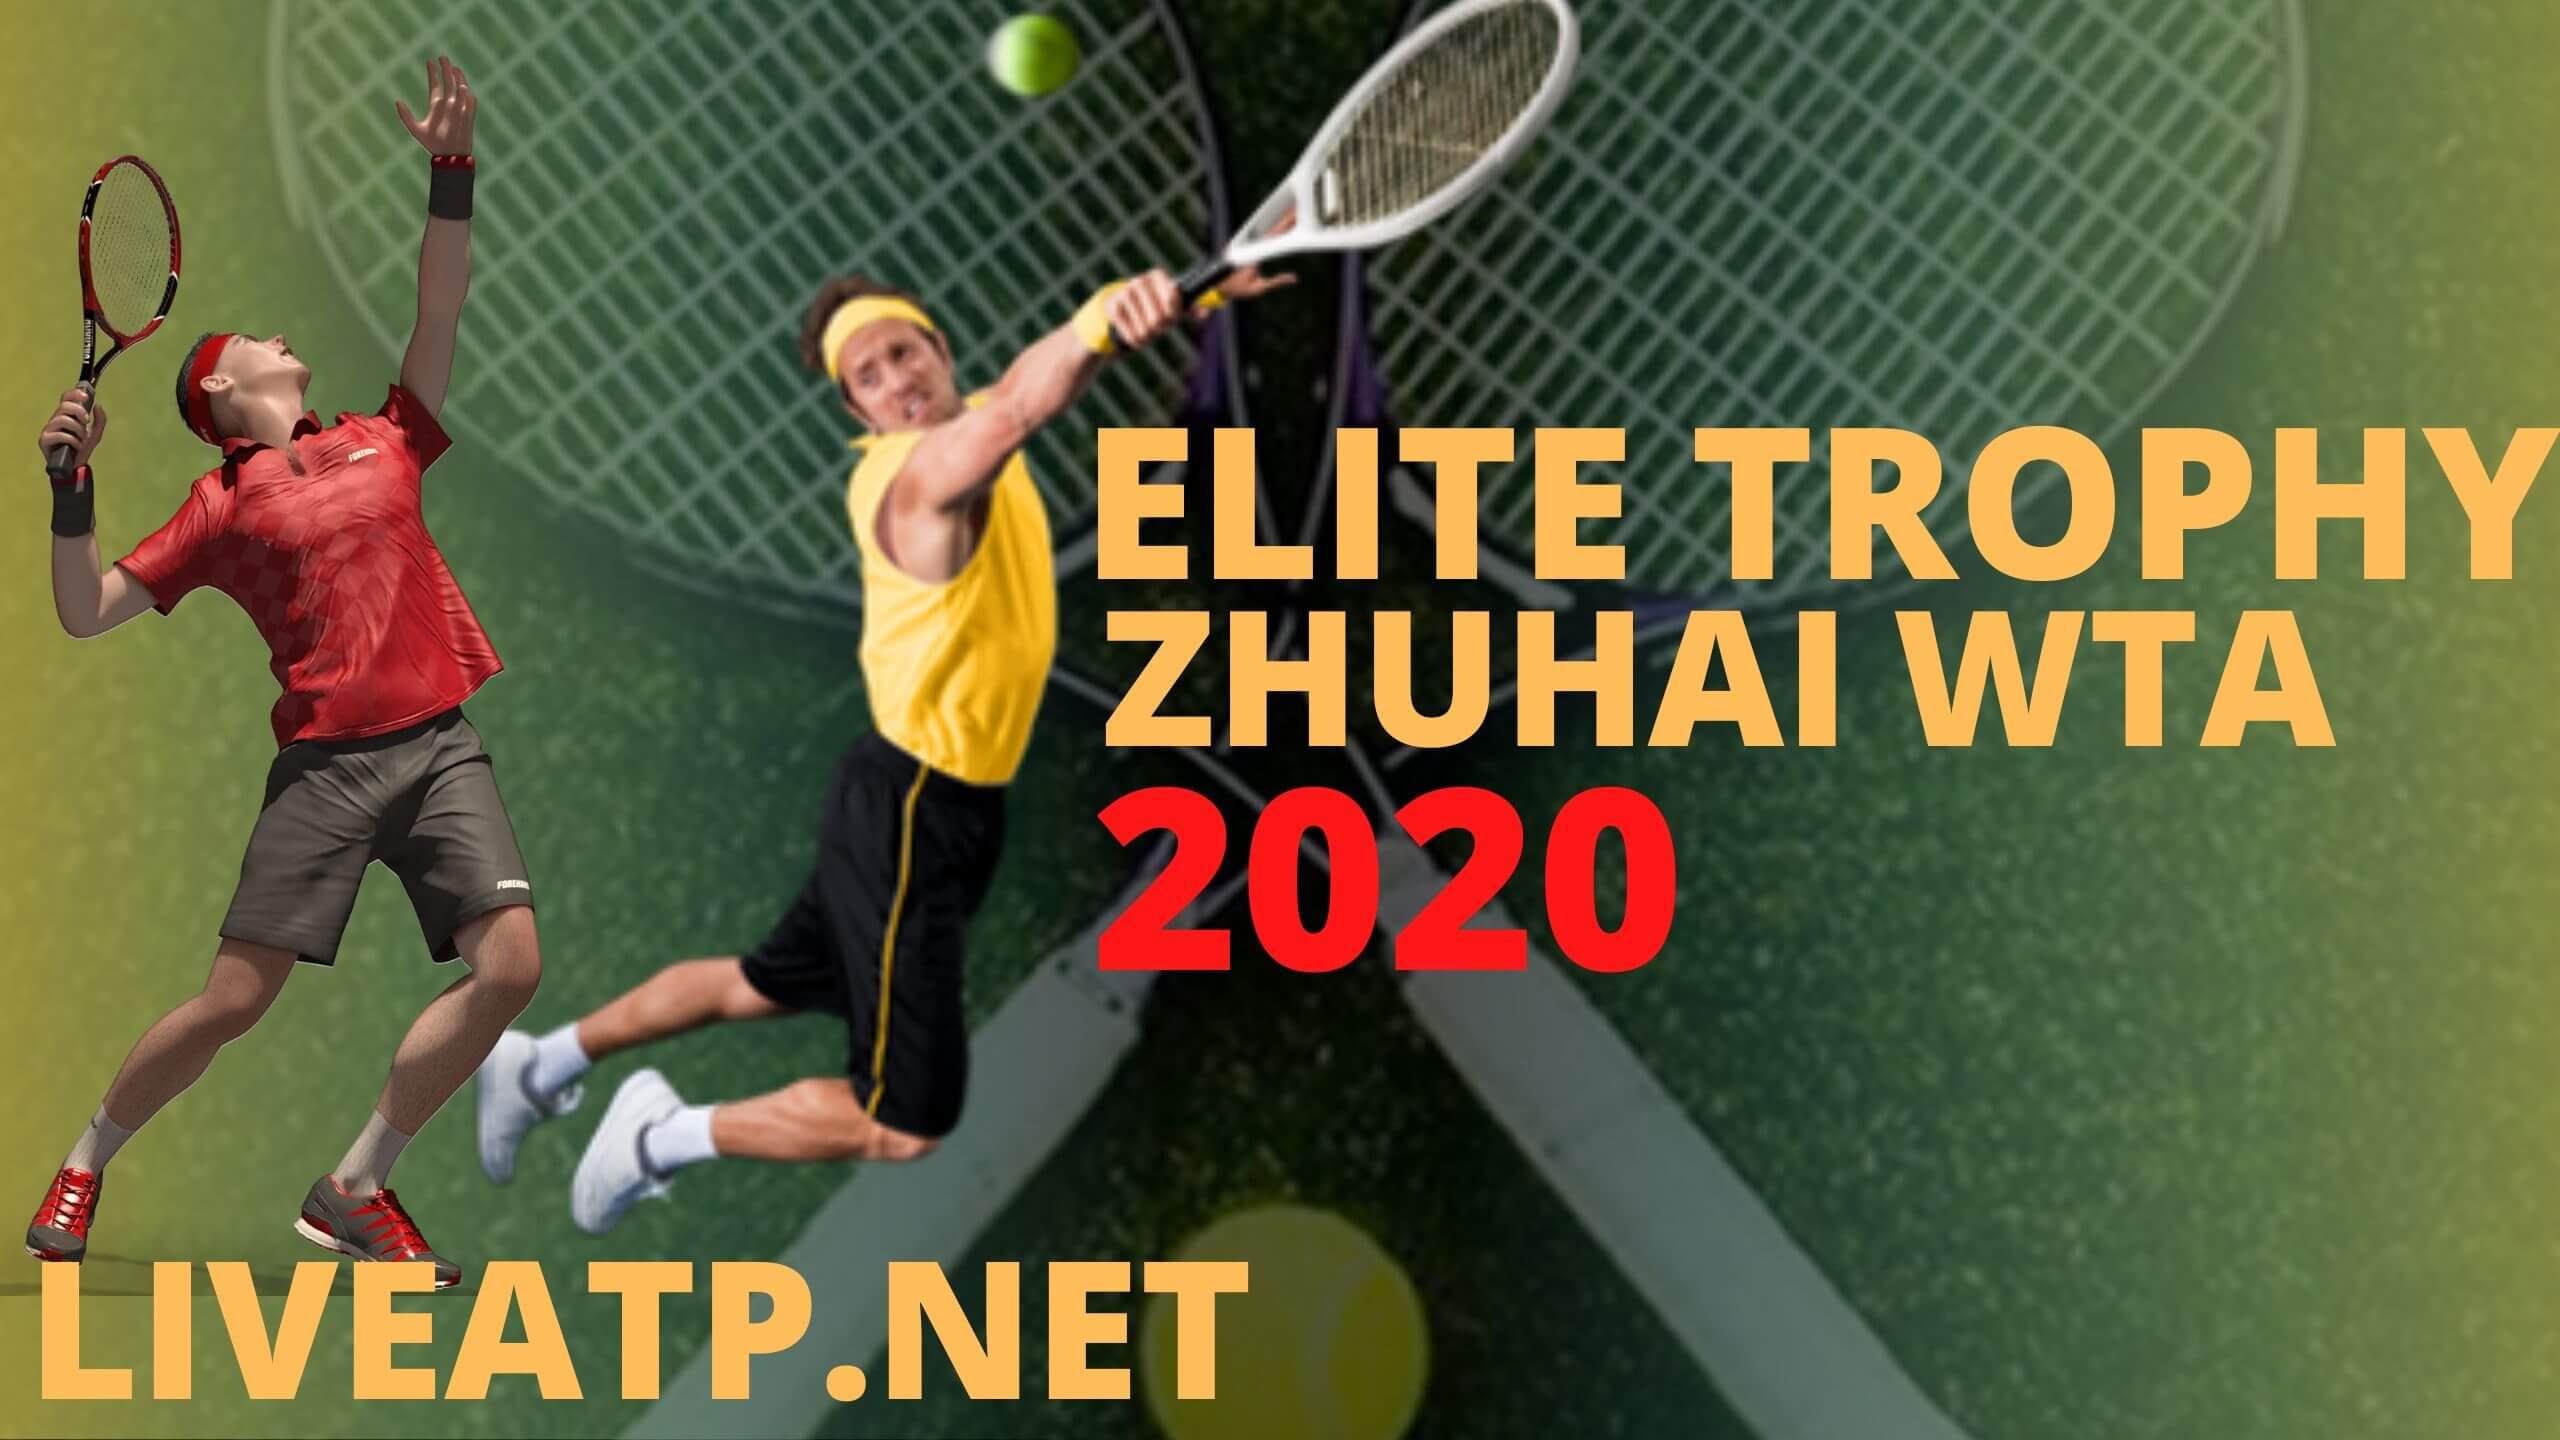 WTA Elite Trophy Zhuhai Live Stream 2020 | Final